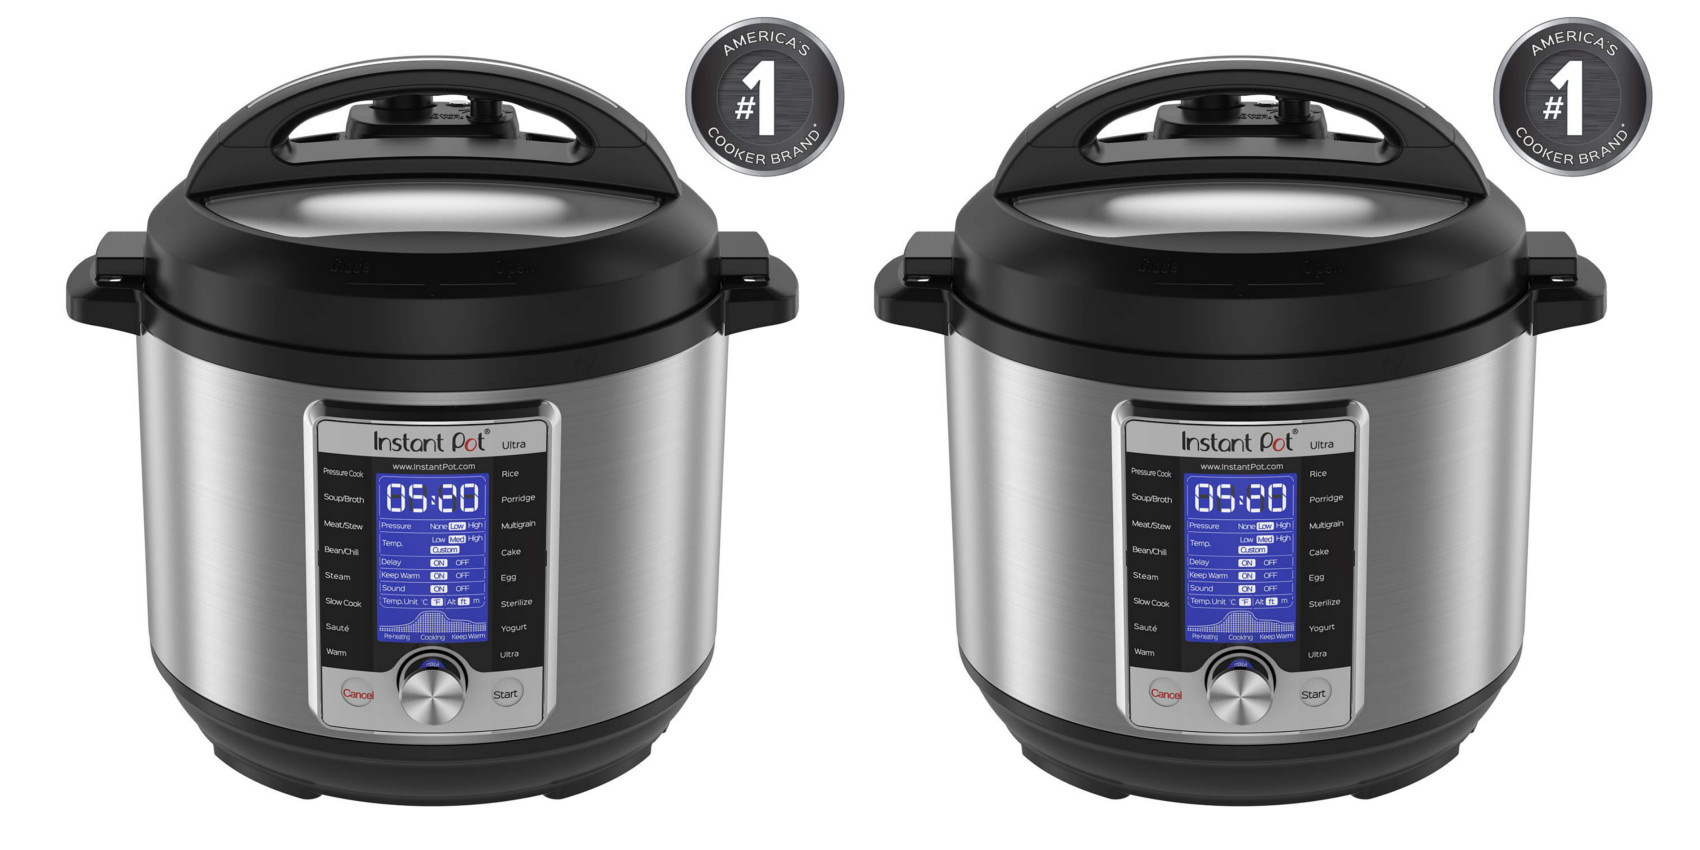 Put a 6-quart Instant Pot Ultra Multi Cooker in your kitchen for $99 shipped (Reg. $150)